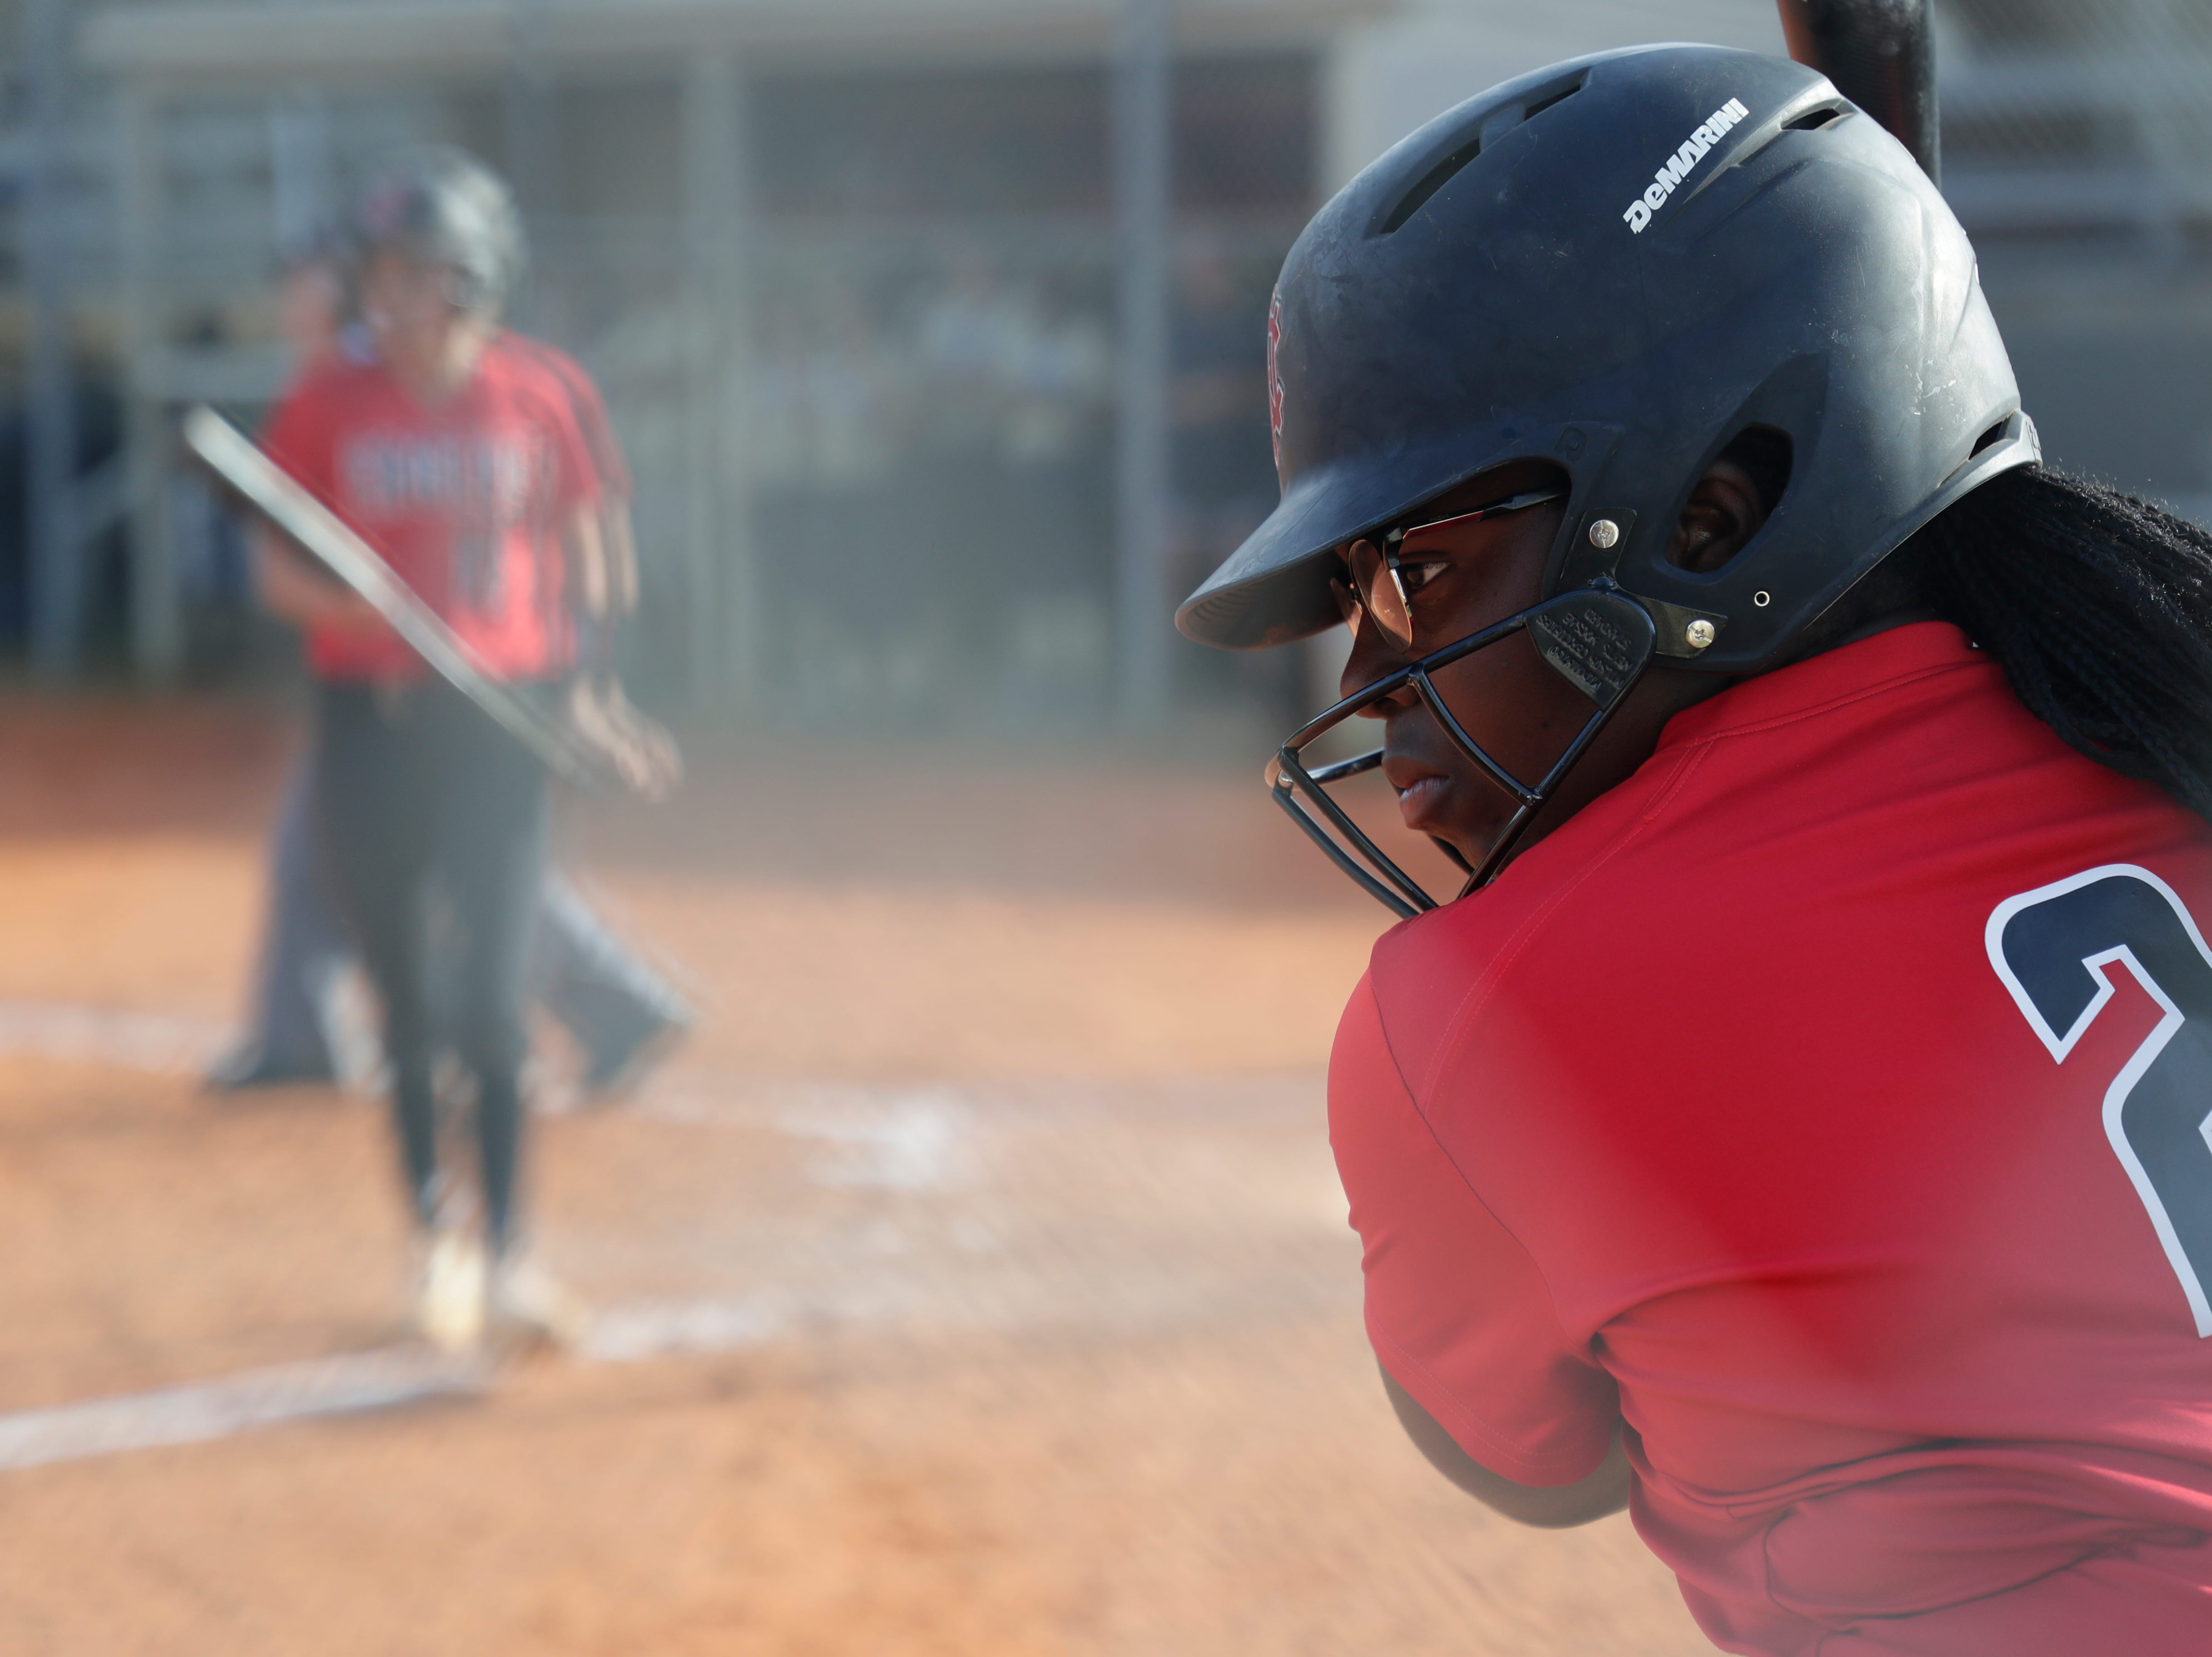 North Florida Christian's Eva Holmes (2) warms up to bat  during the 1-3A regional final game between NFC and University Christian at NFC Tuesday, May 14, 2019. UC defeated NFC 16 to 11 to advance to the state tournament.